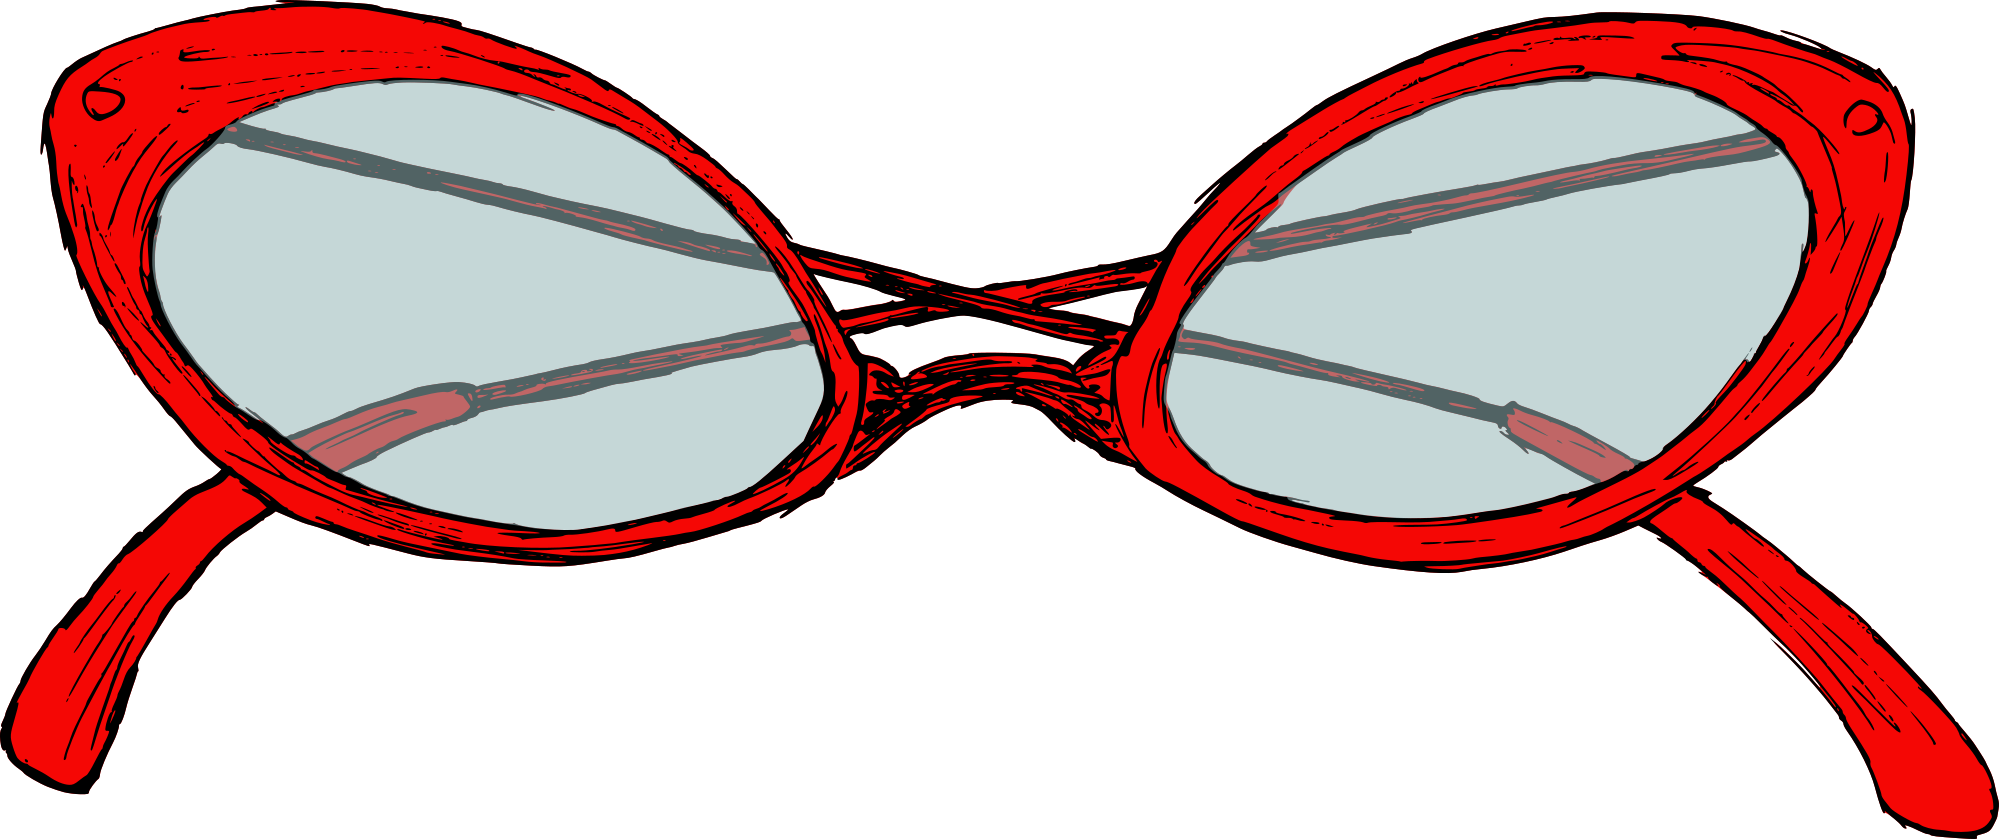 vintage-eye-glasses-drawing-2-1.png